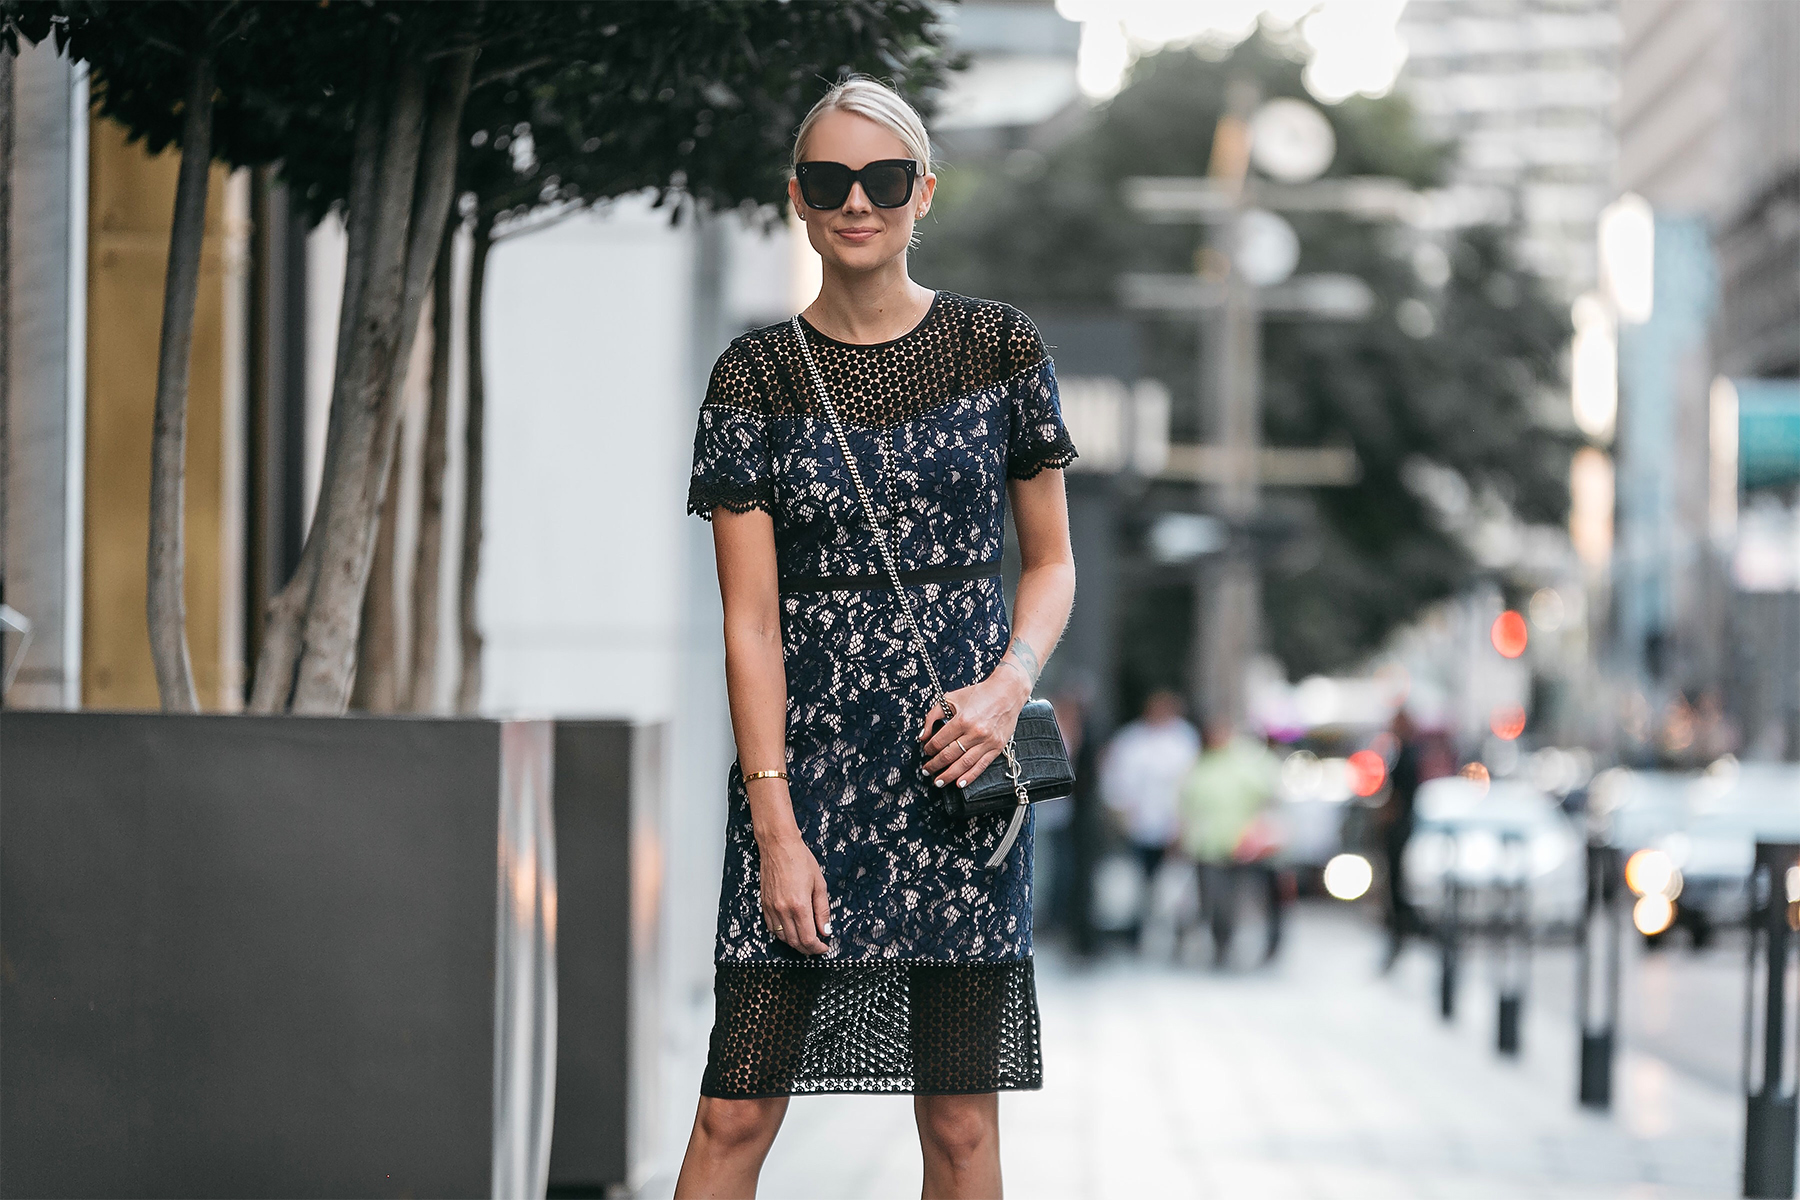 Blonde Woman Wearing Club Monaco Black Navy Lace Dress YSL Black Monogram Tassel Clutch Fashion Jackson Dallas Blogger Fashion Blogger Street Style